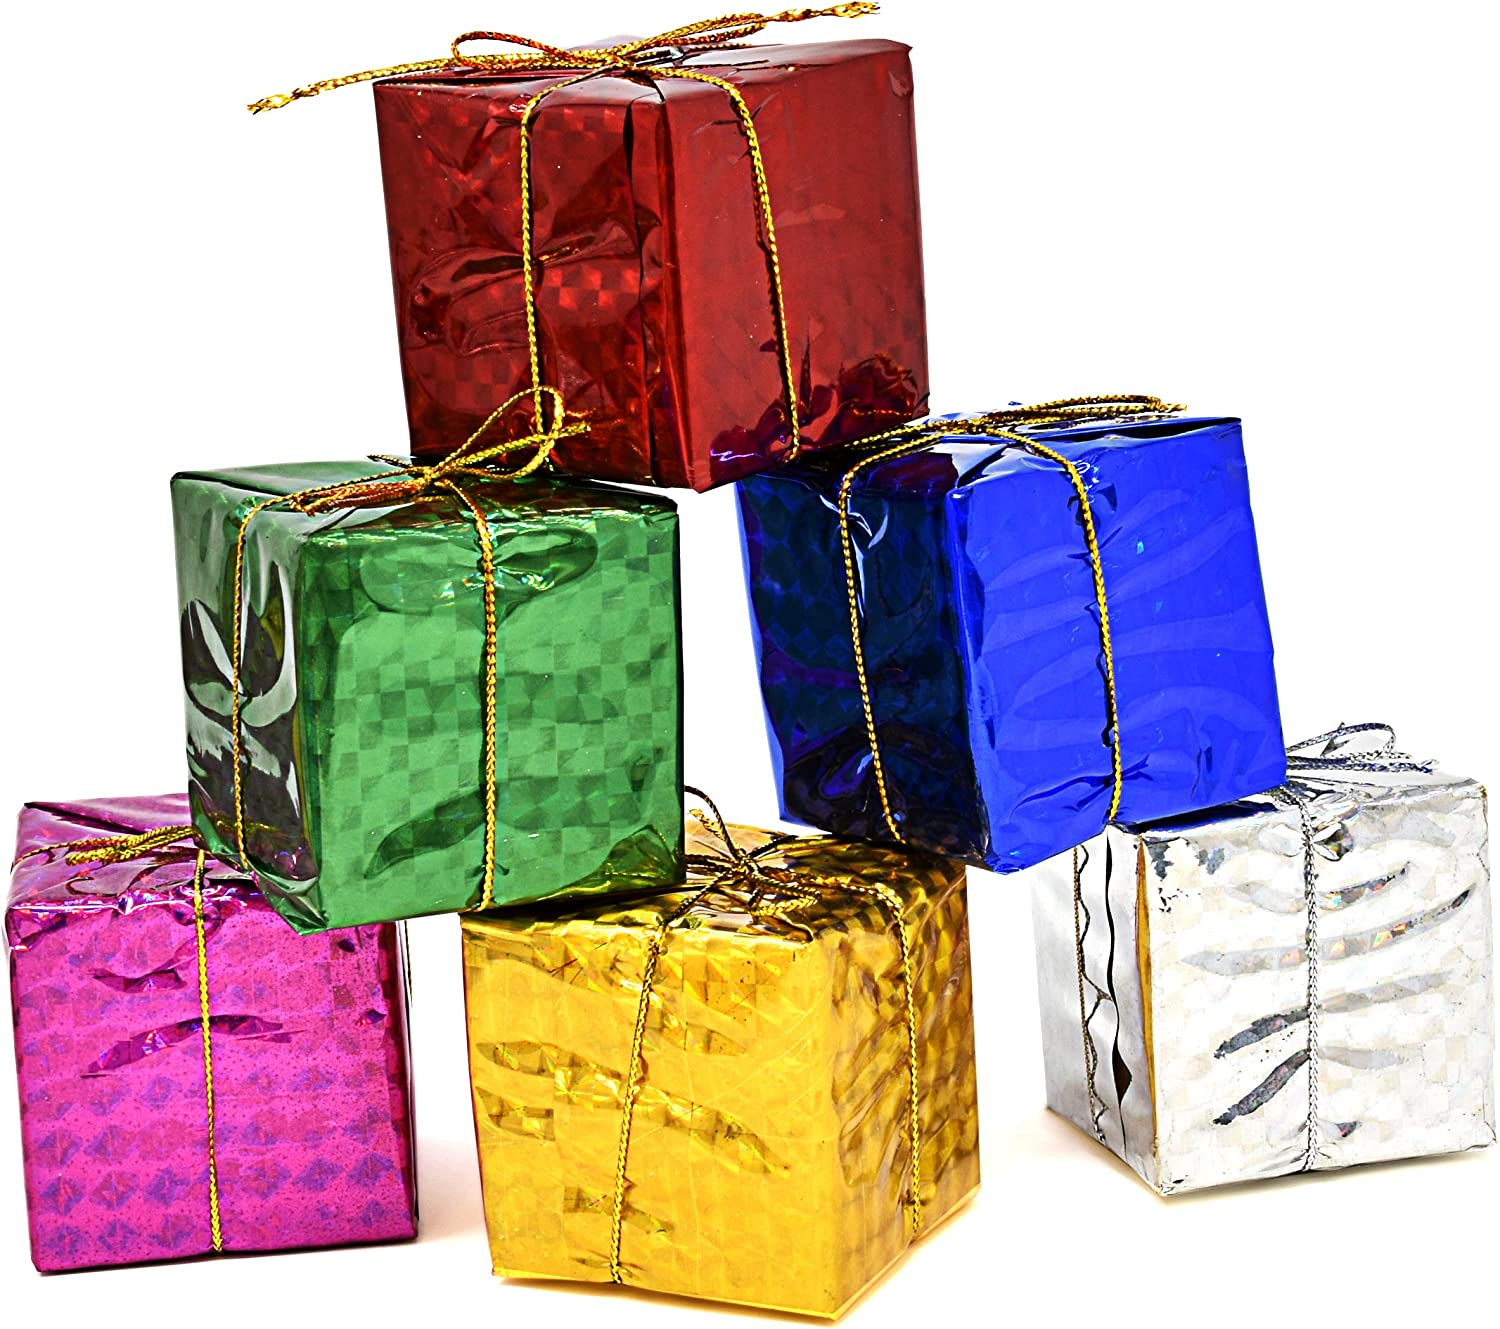 Gift Boutique Gift Box Christmas Ornaments 36 Pieces Mini Wrapped Present Boxes Miniature Foil Ornaments Decoration Boxes Assorted Colors Miniature 2 Inches